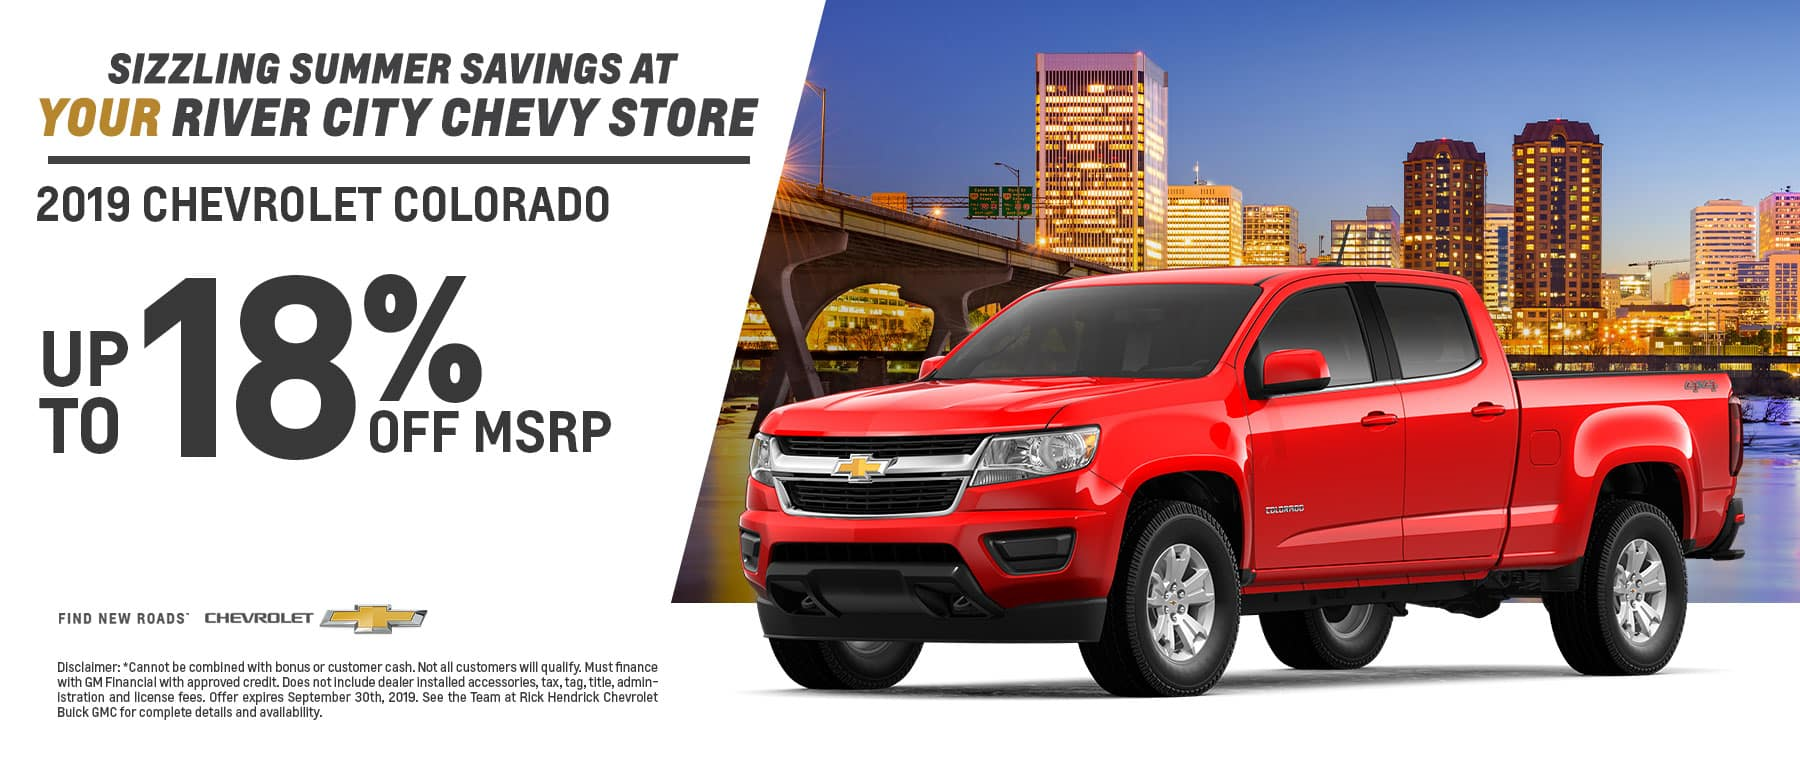 2019 Chevy Colorado up to 18% off MSRP